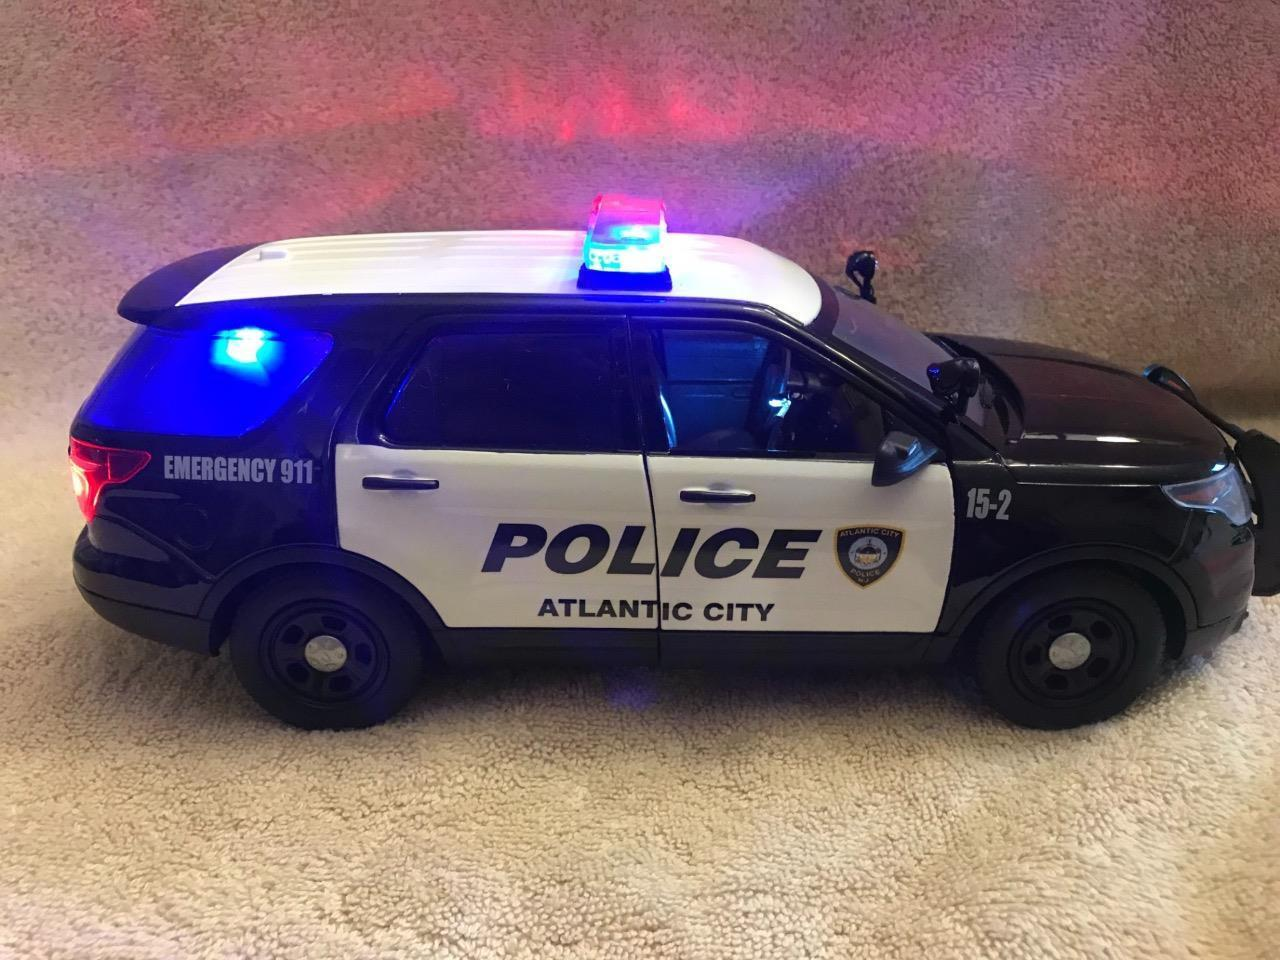 1 18 SCALE ATLANTIC CITY POLICE FORD SUV DIECAST W WORKING LIGHTS AND SIREN